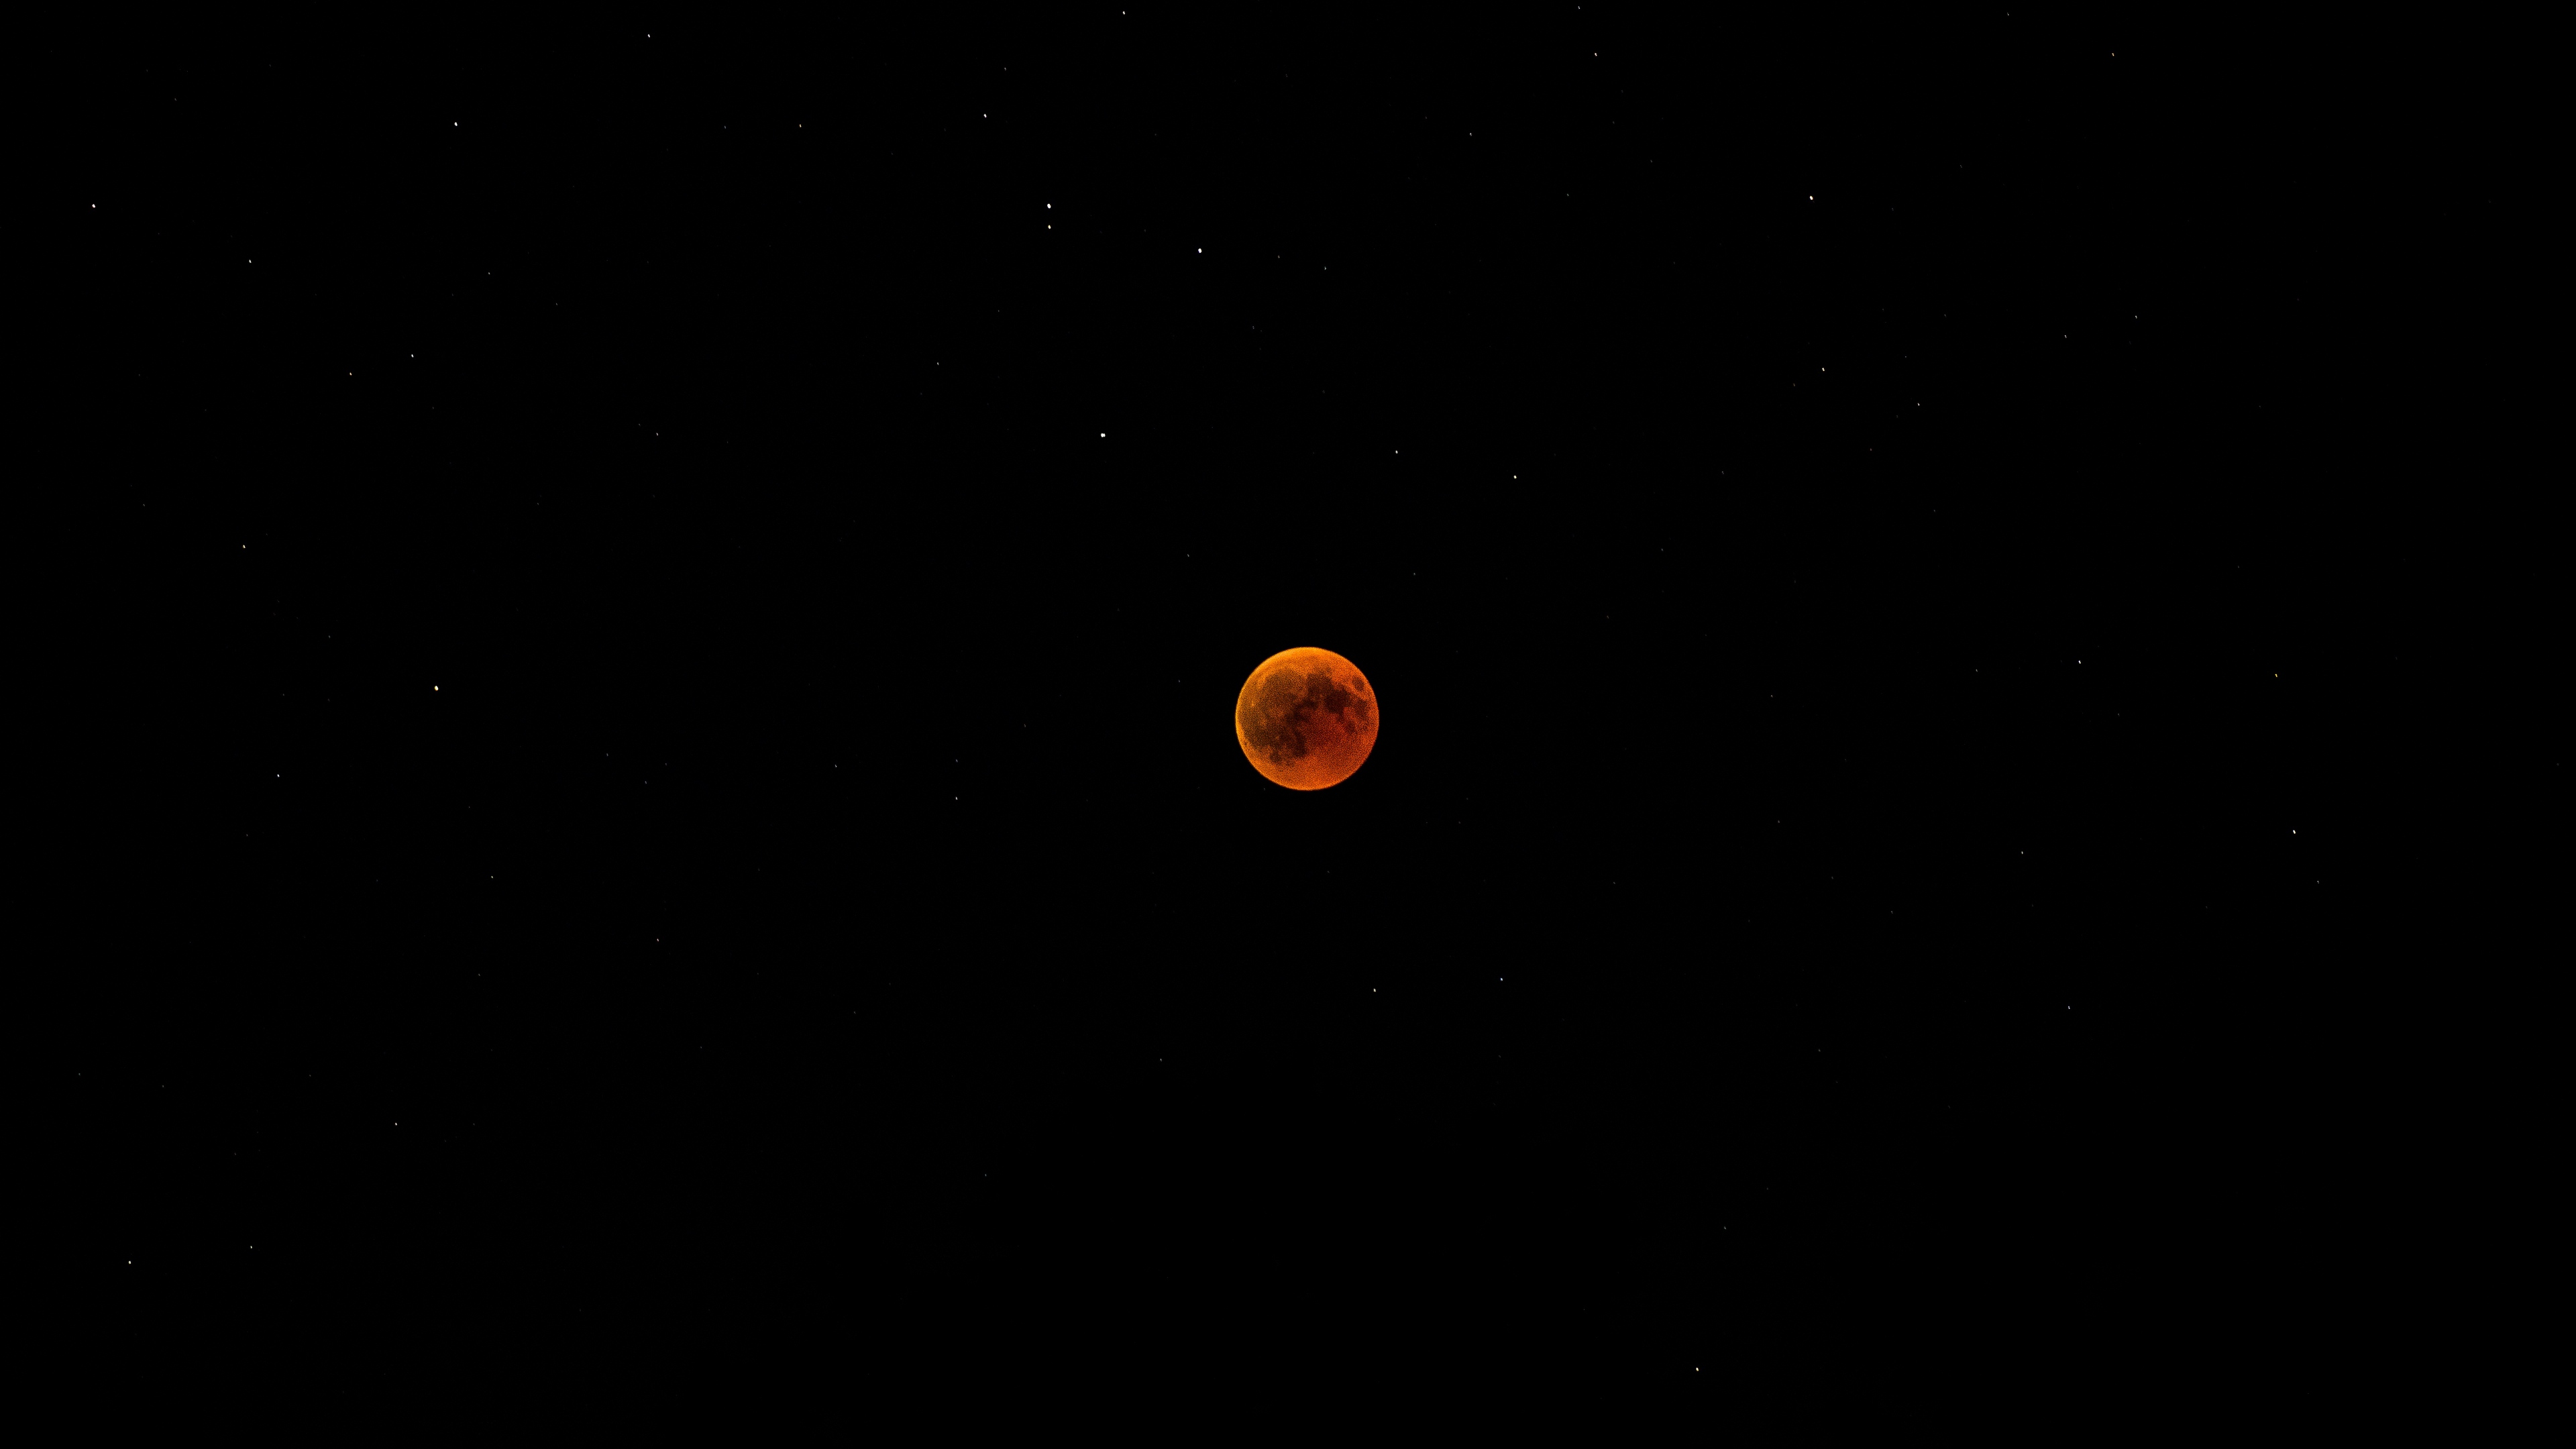 full moon red moon eclipse starry sky night 4k 1536013905 - full moon, red moon, eclipse, starry sky, night 4k - red moon, full moon, Eclipse